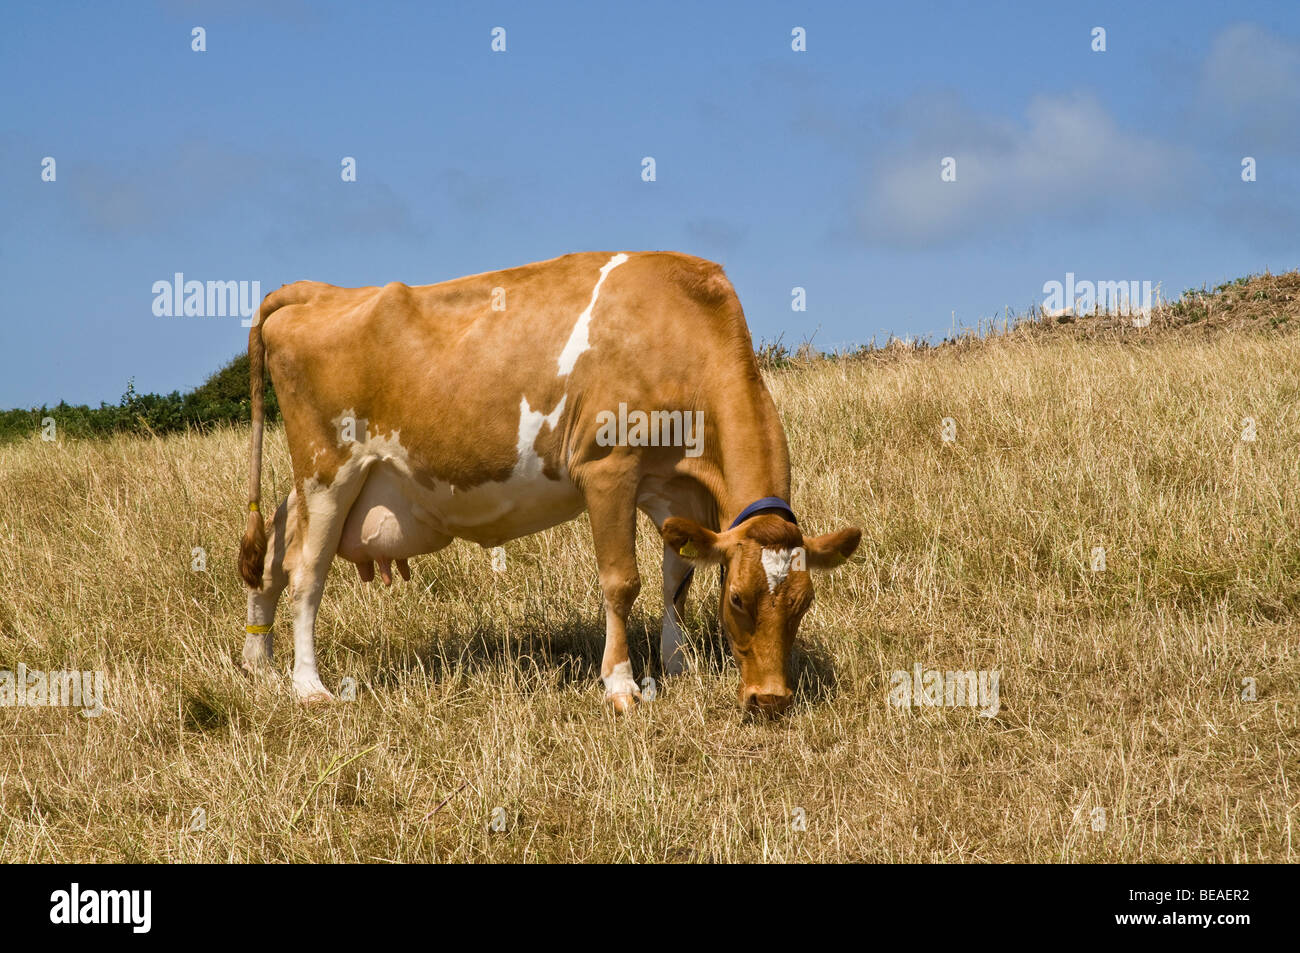 dh Guernsey cow ANIMAL GUERNSEY Guernsey cow dairy grazing in stubbled field grass - Stock Image